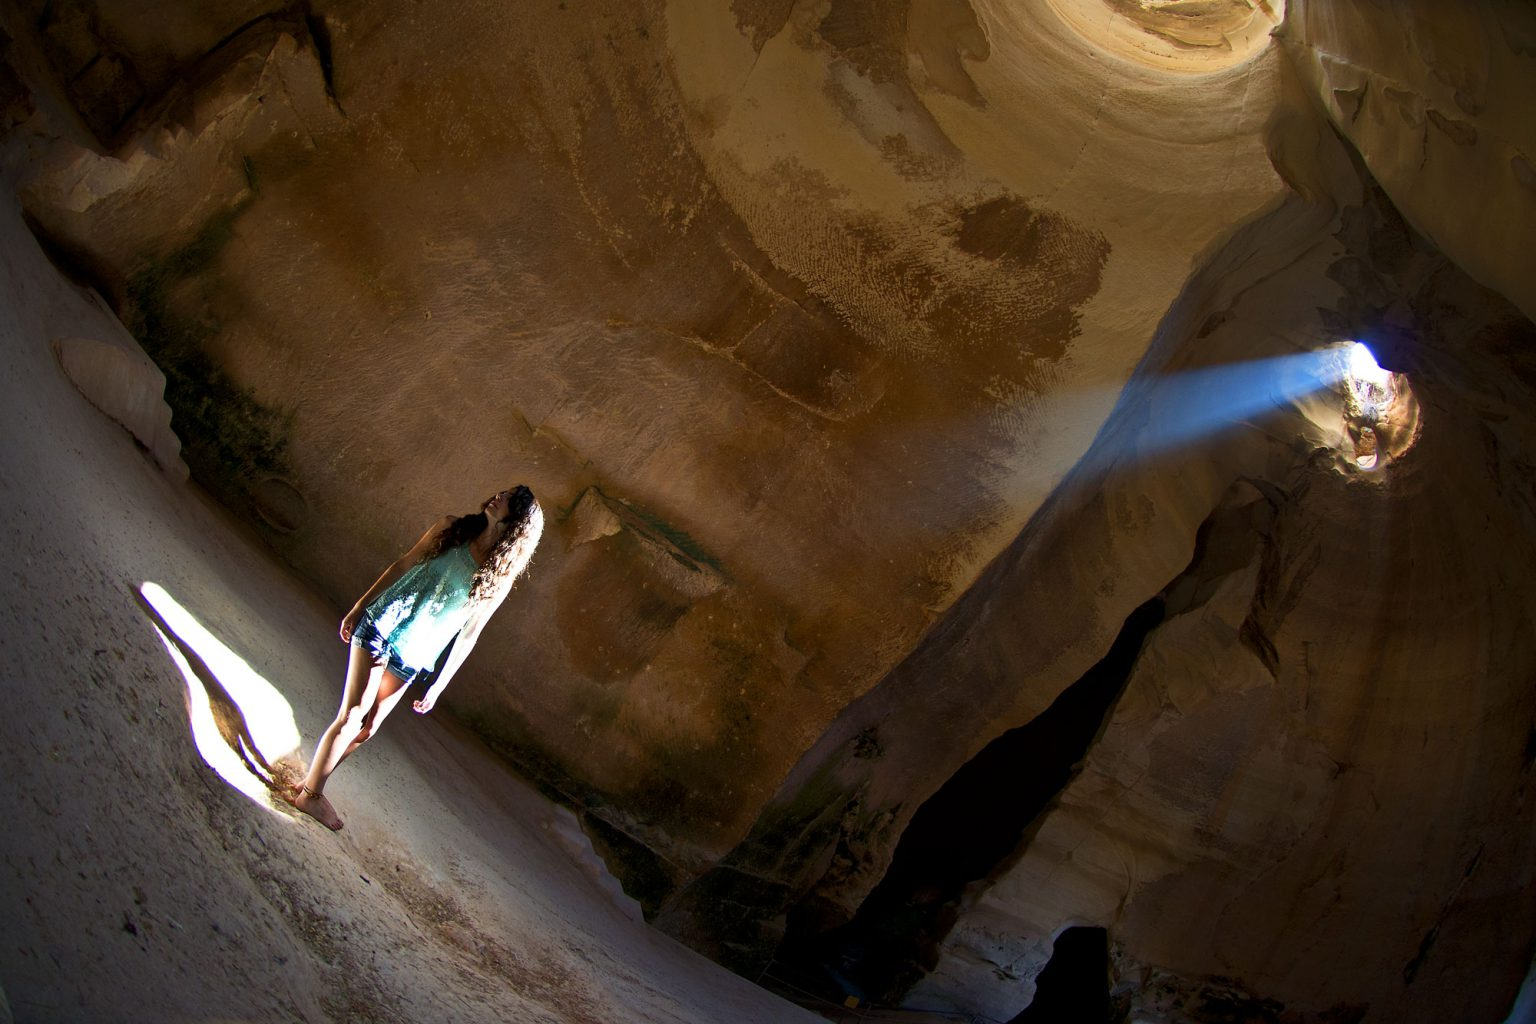 Bet Guvrin Caves, Israel